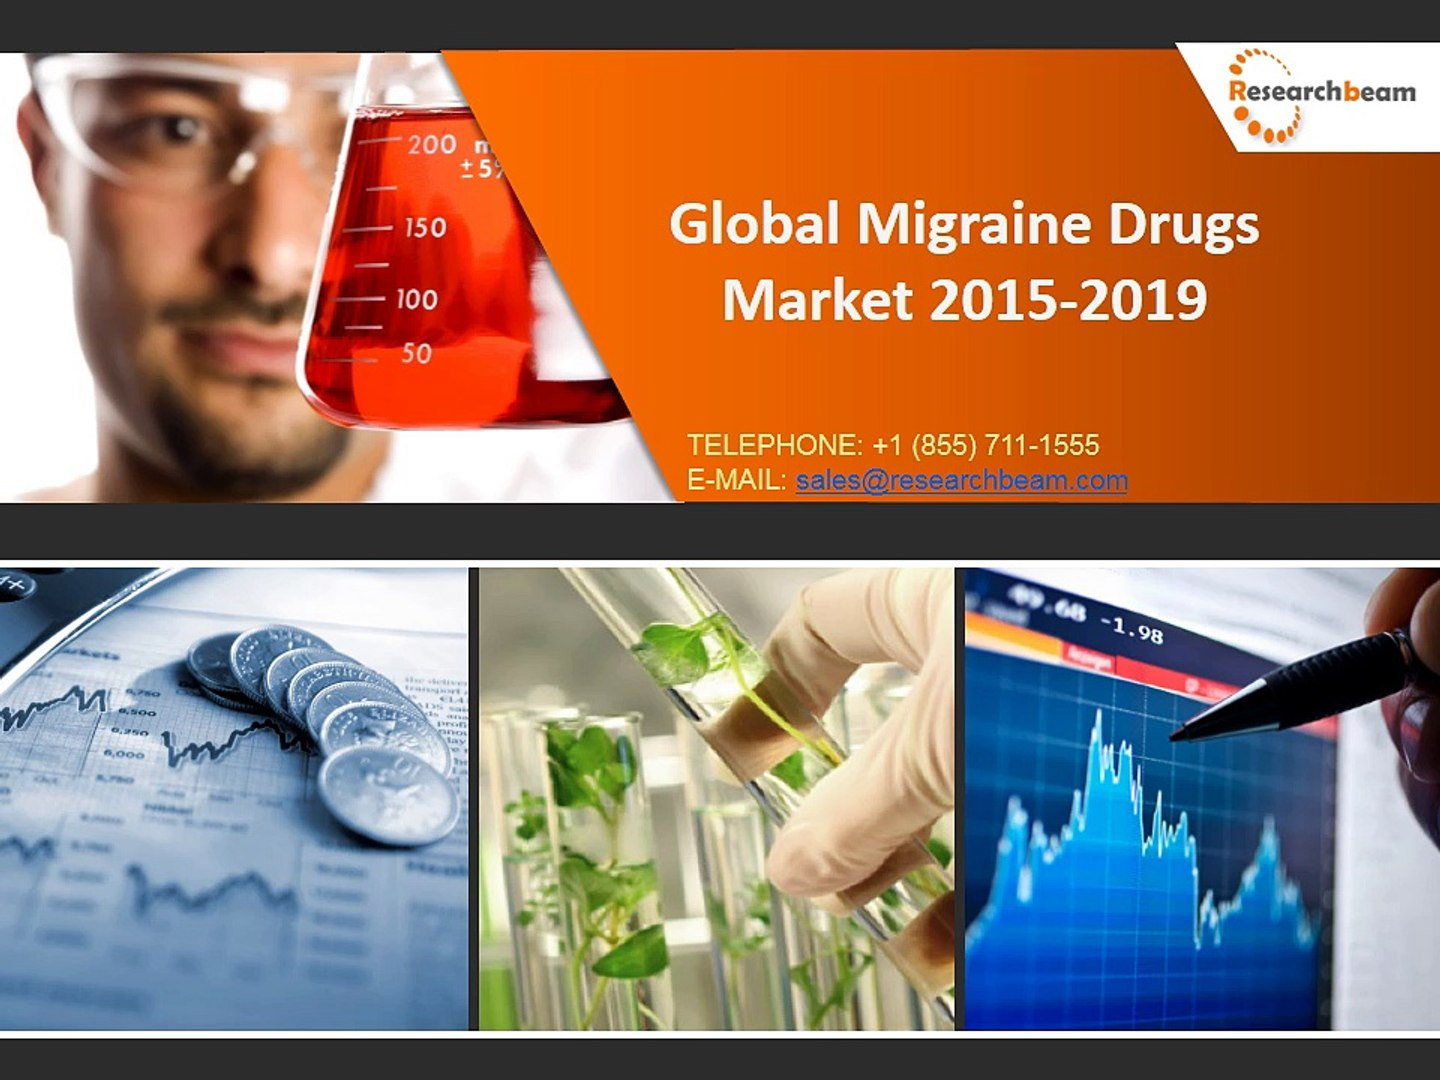 Latest Report On Global Migraine Drugs Market Size, Share, Trends 2015-2019